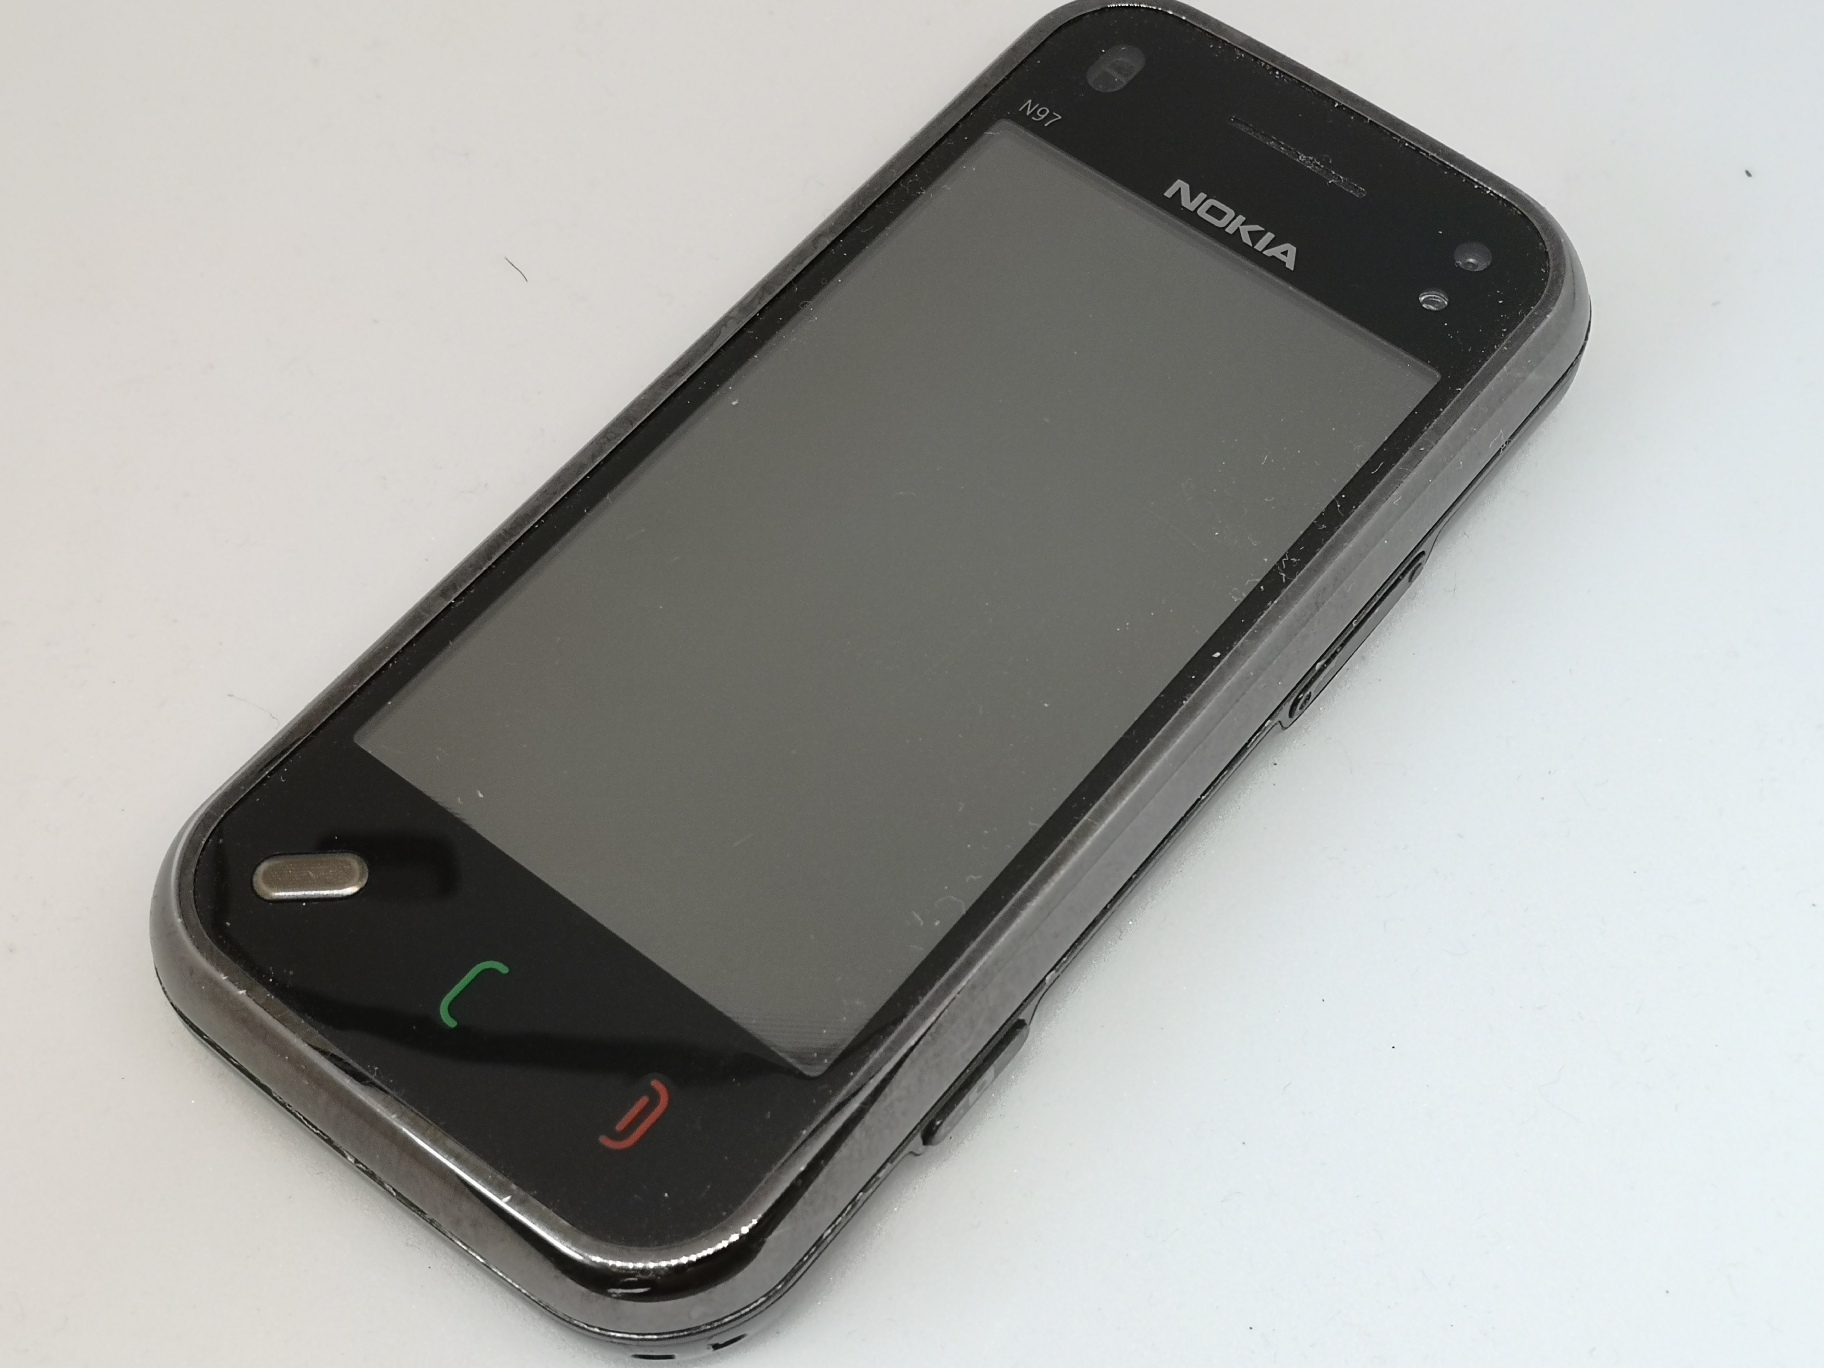 Nokia N97 Mini Review - Upgraded Full Feature Phone